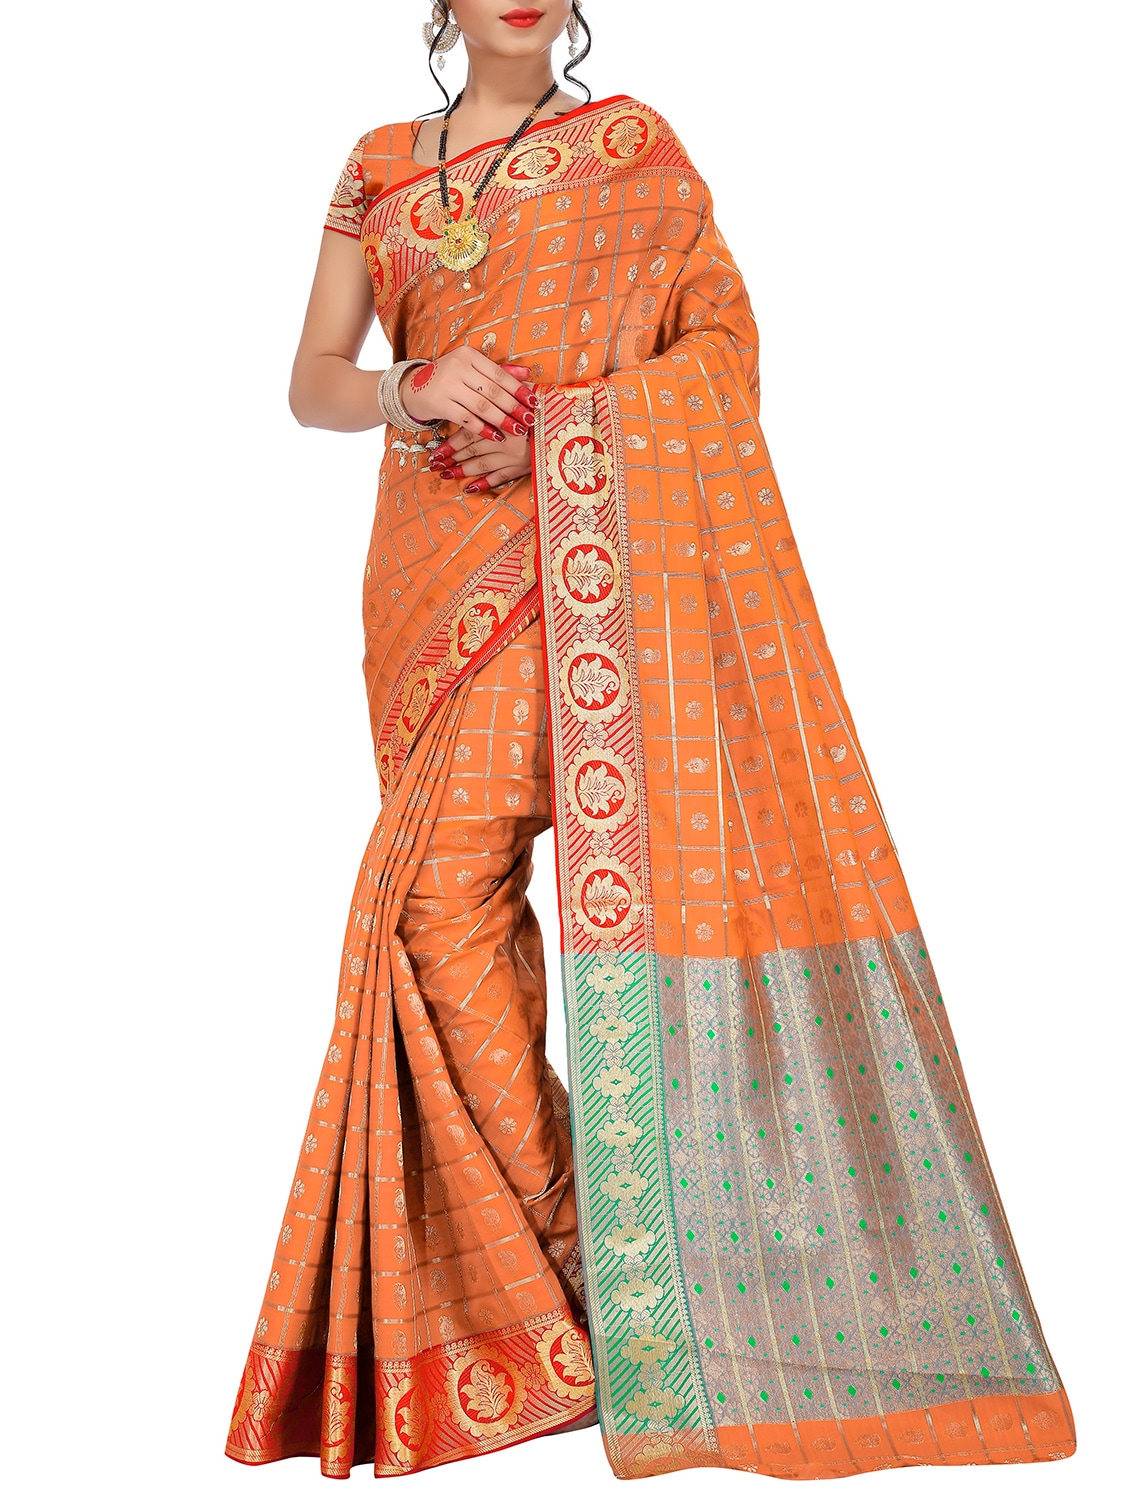 8a0924ad9cf4b Buy Orange Banarasi Silk Saree With Blouse for Women from Justfashion for  ₹1304 at 44% off